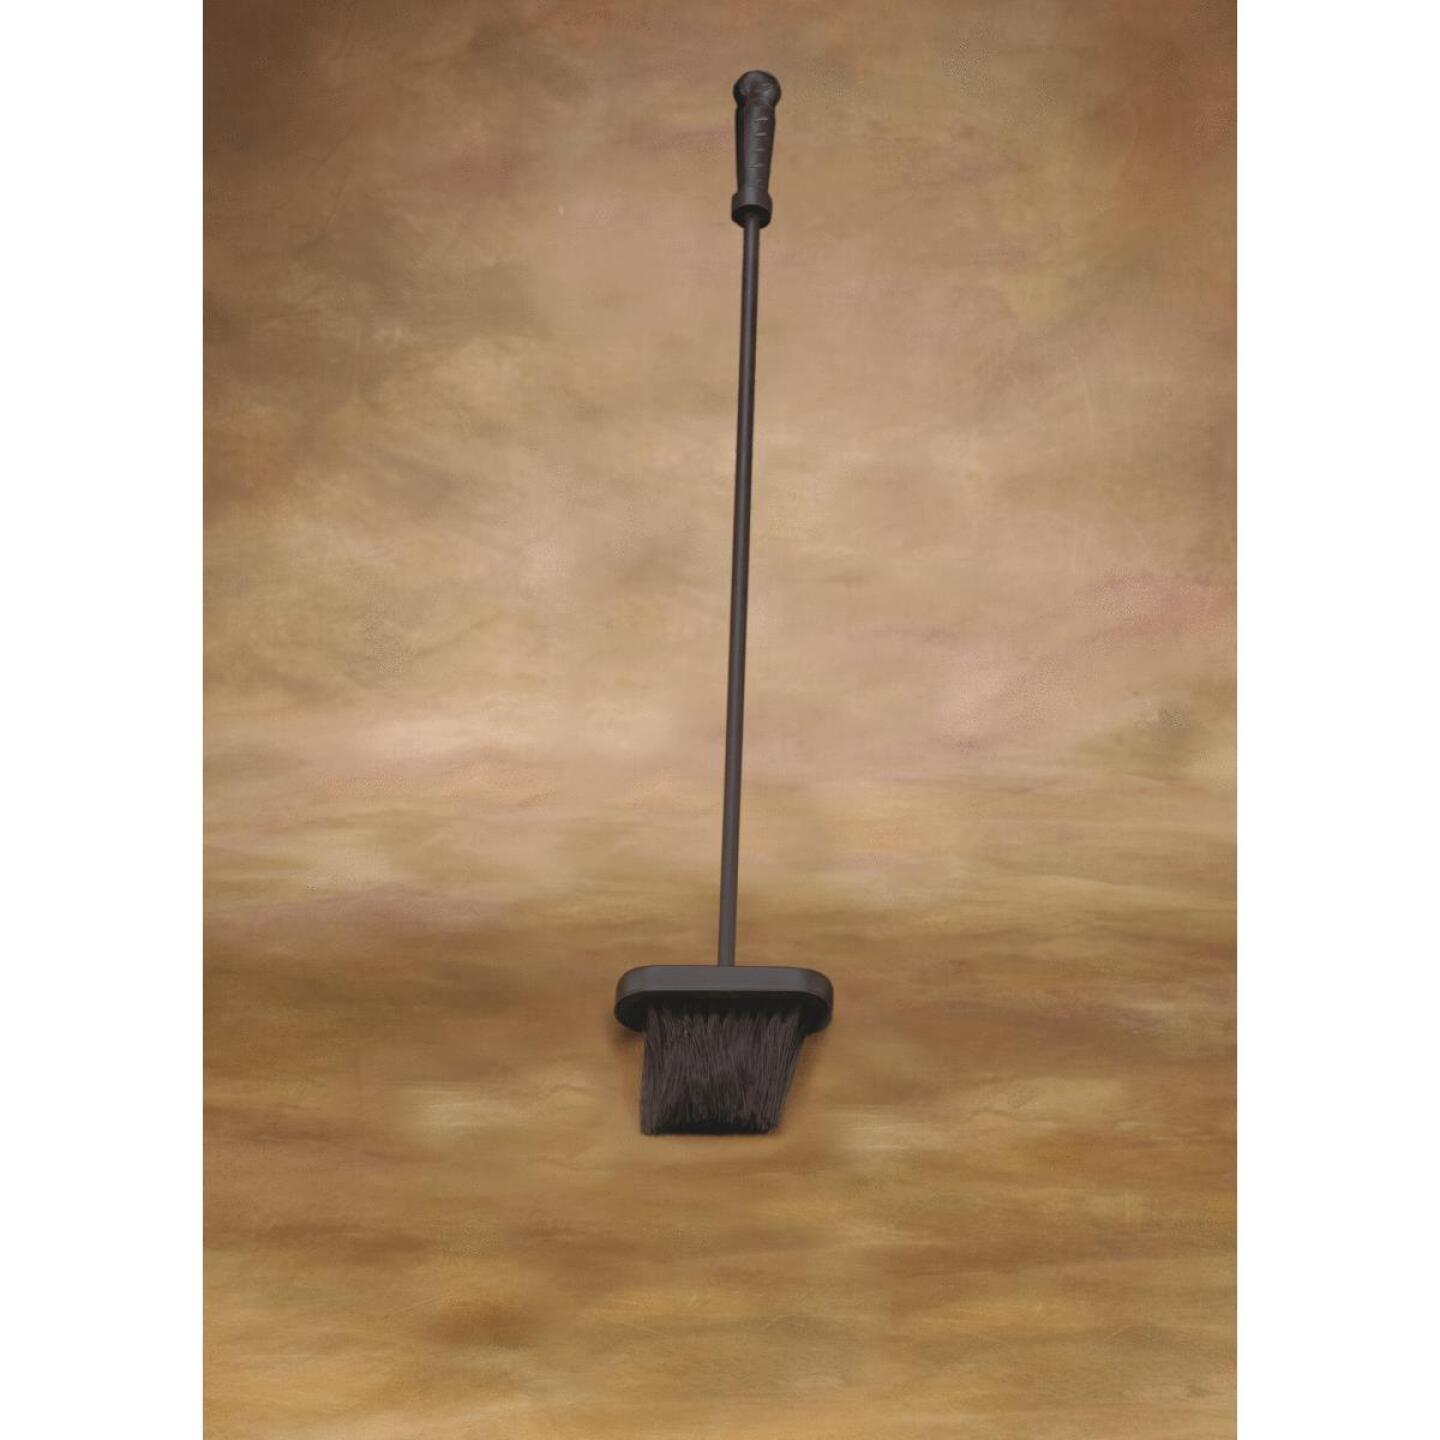 Home Impressions Early American Cast-Iron Nylon Fireplace Brush Image 2